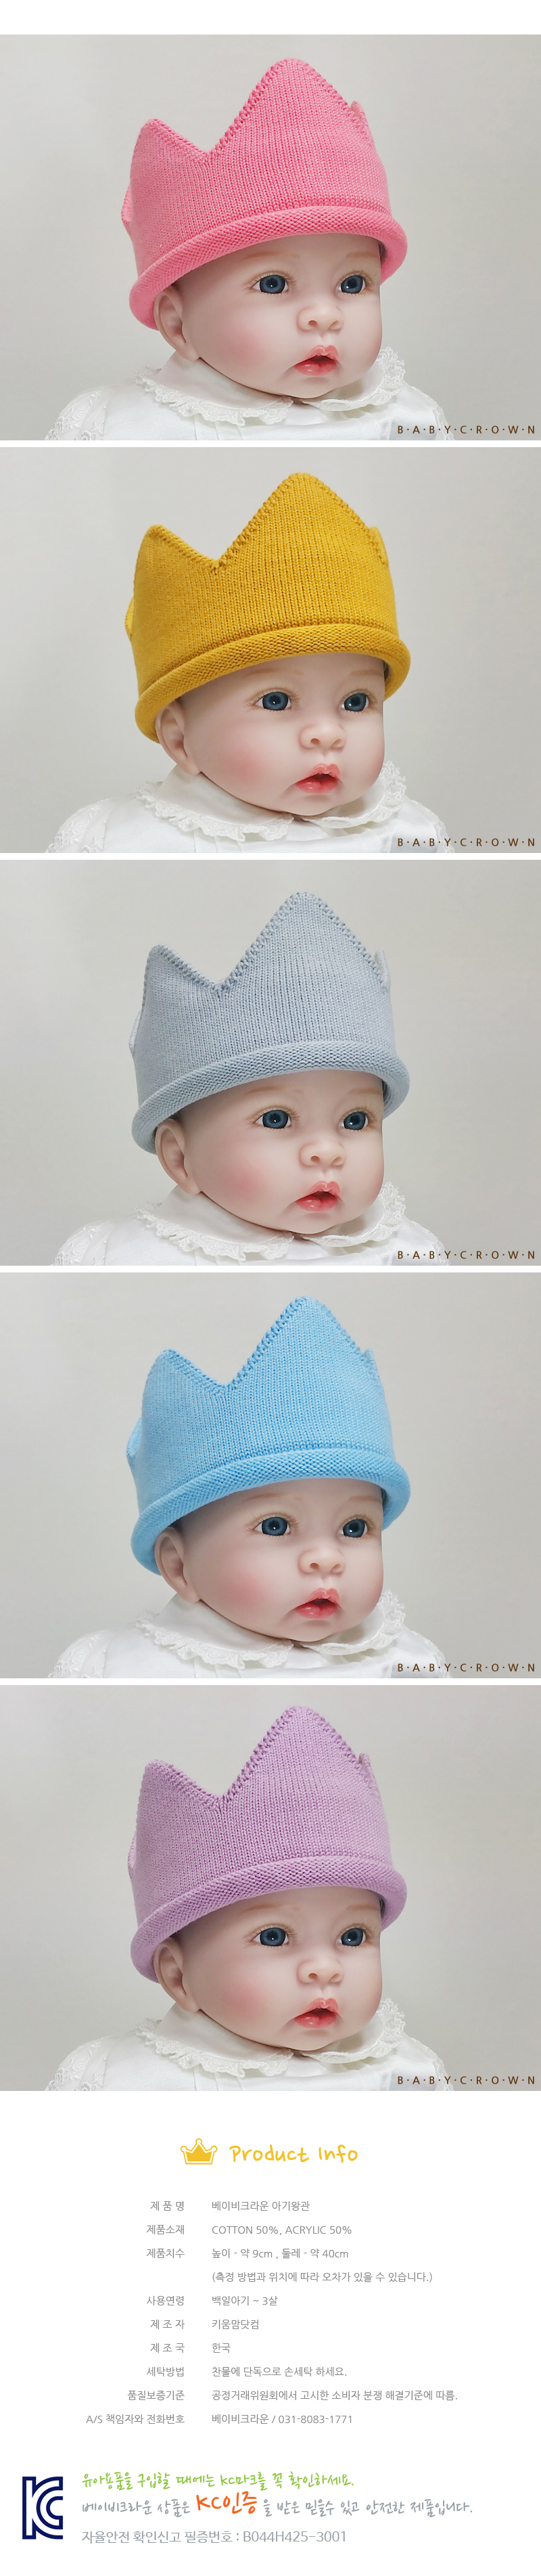 [ Babycrown ] [Baby Crown] baby knit crown cutie (grape)